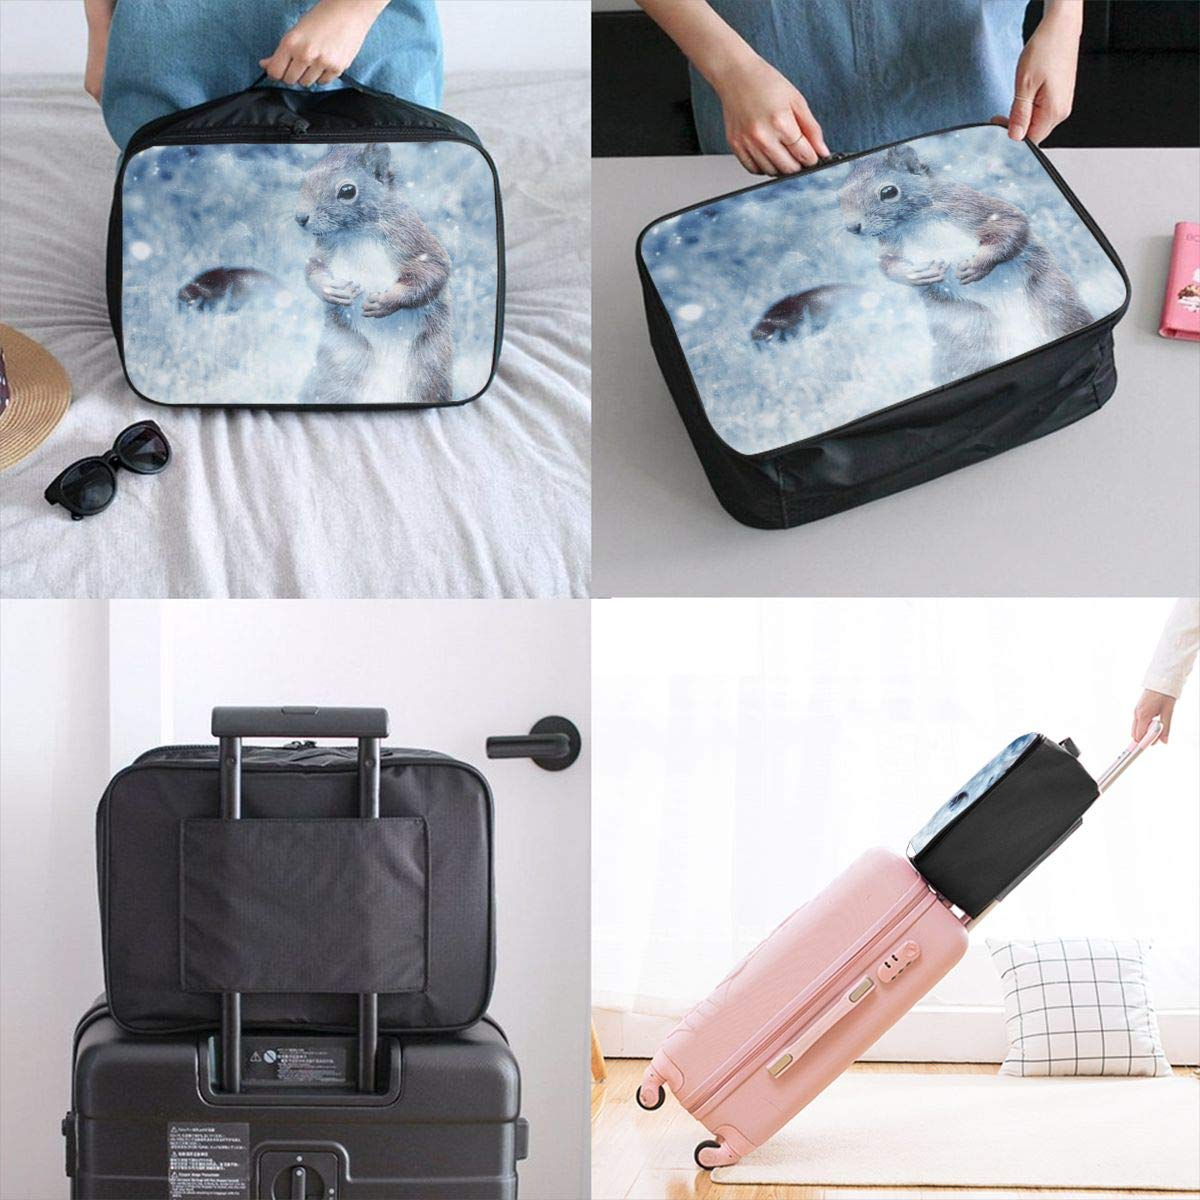 Artistic Fantasy Color Doodle Travel Lightweight Waterproof Foldable Storage Carry Luggage Large Capacity Portable Luggage Bag Duffel Bag